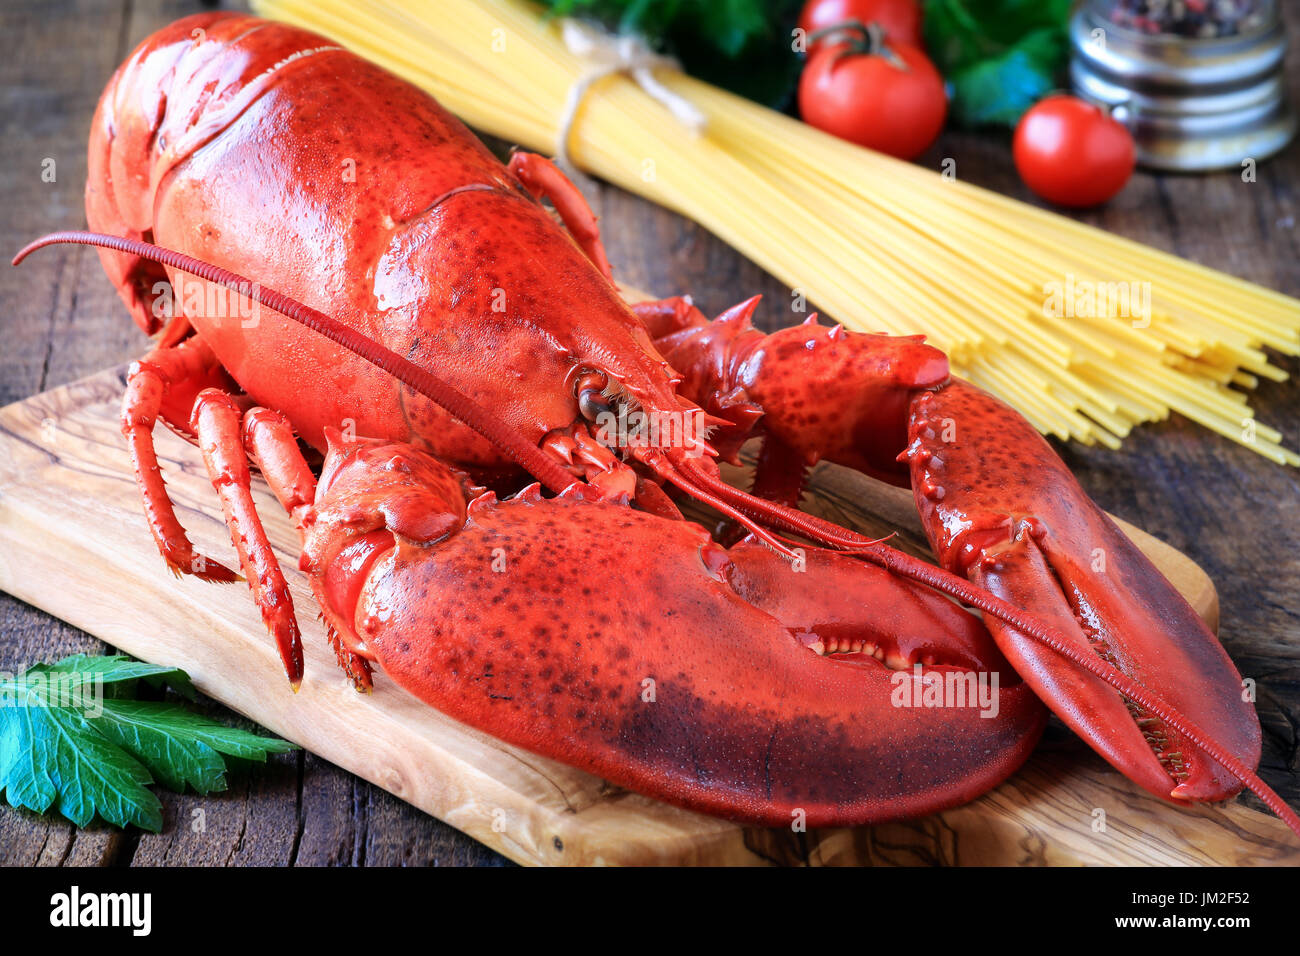 Delicious cooked lobster on wooden cutting board as a concept of Christmas cooking with a candle and fir or pine branches at the  background - Stock Image